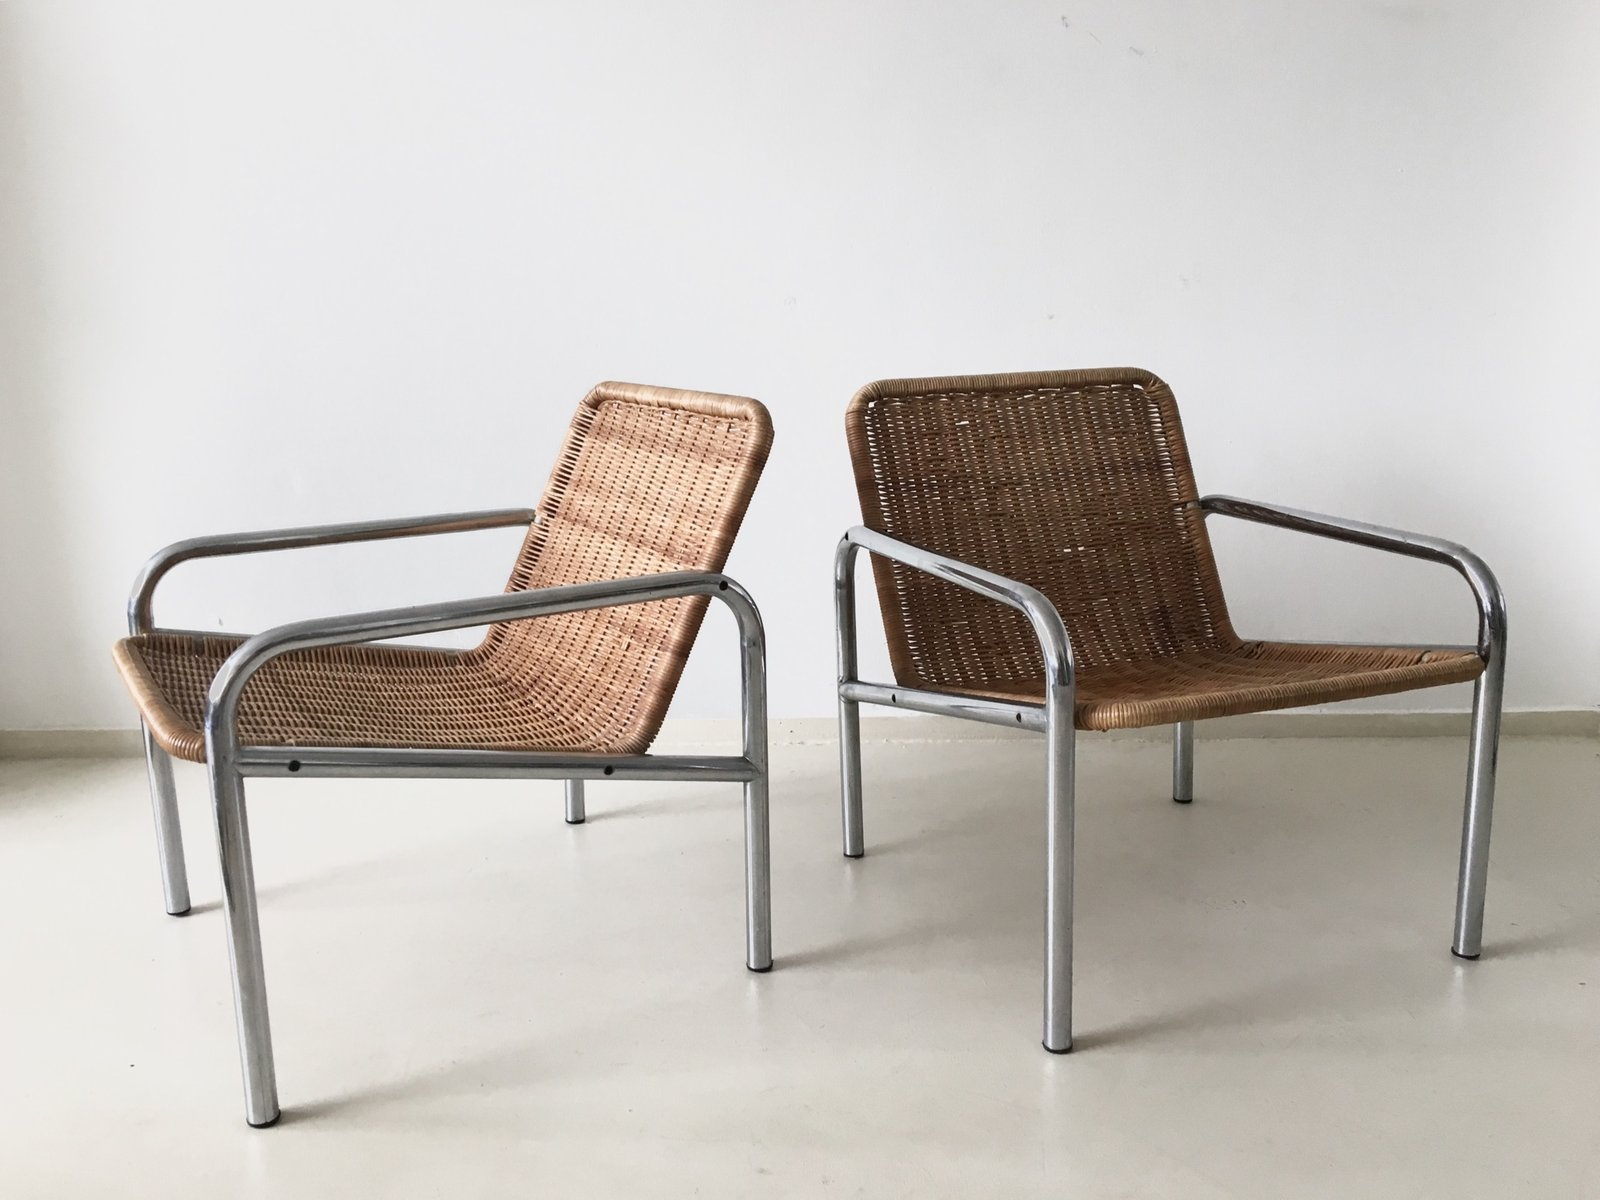 Vintage Wicker and Metal Lounge Chair 1960s for sale at Pamono